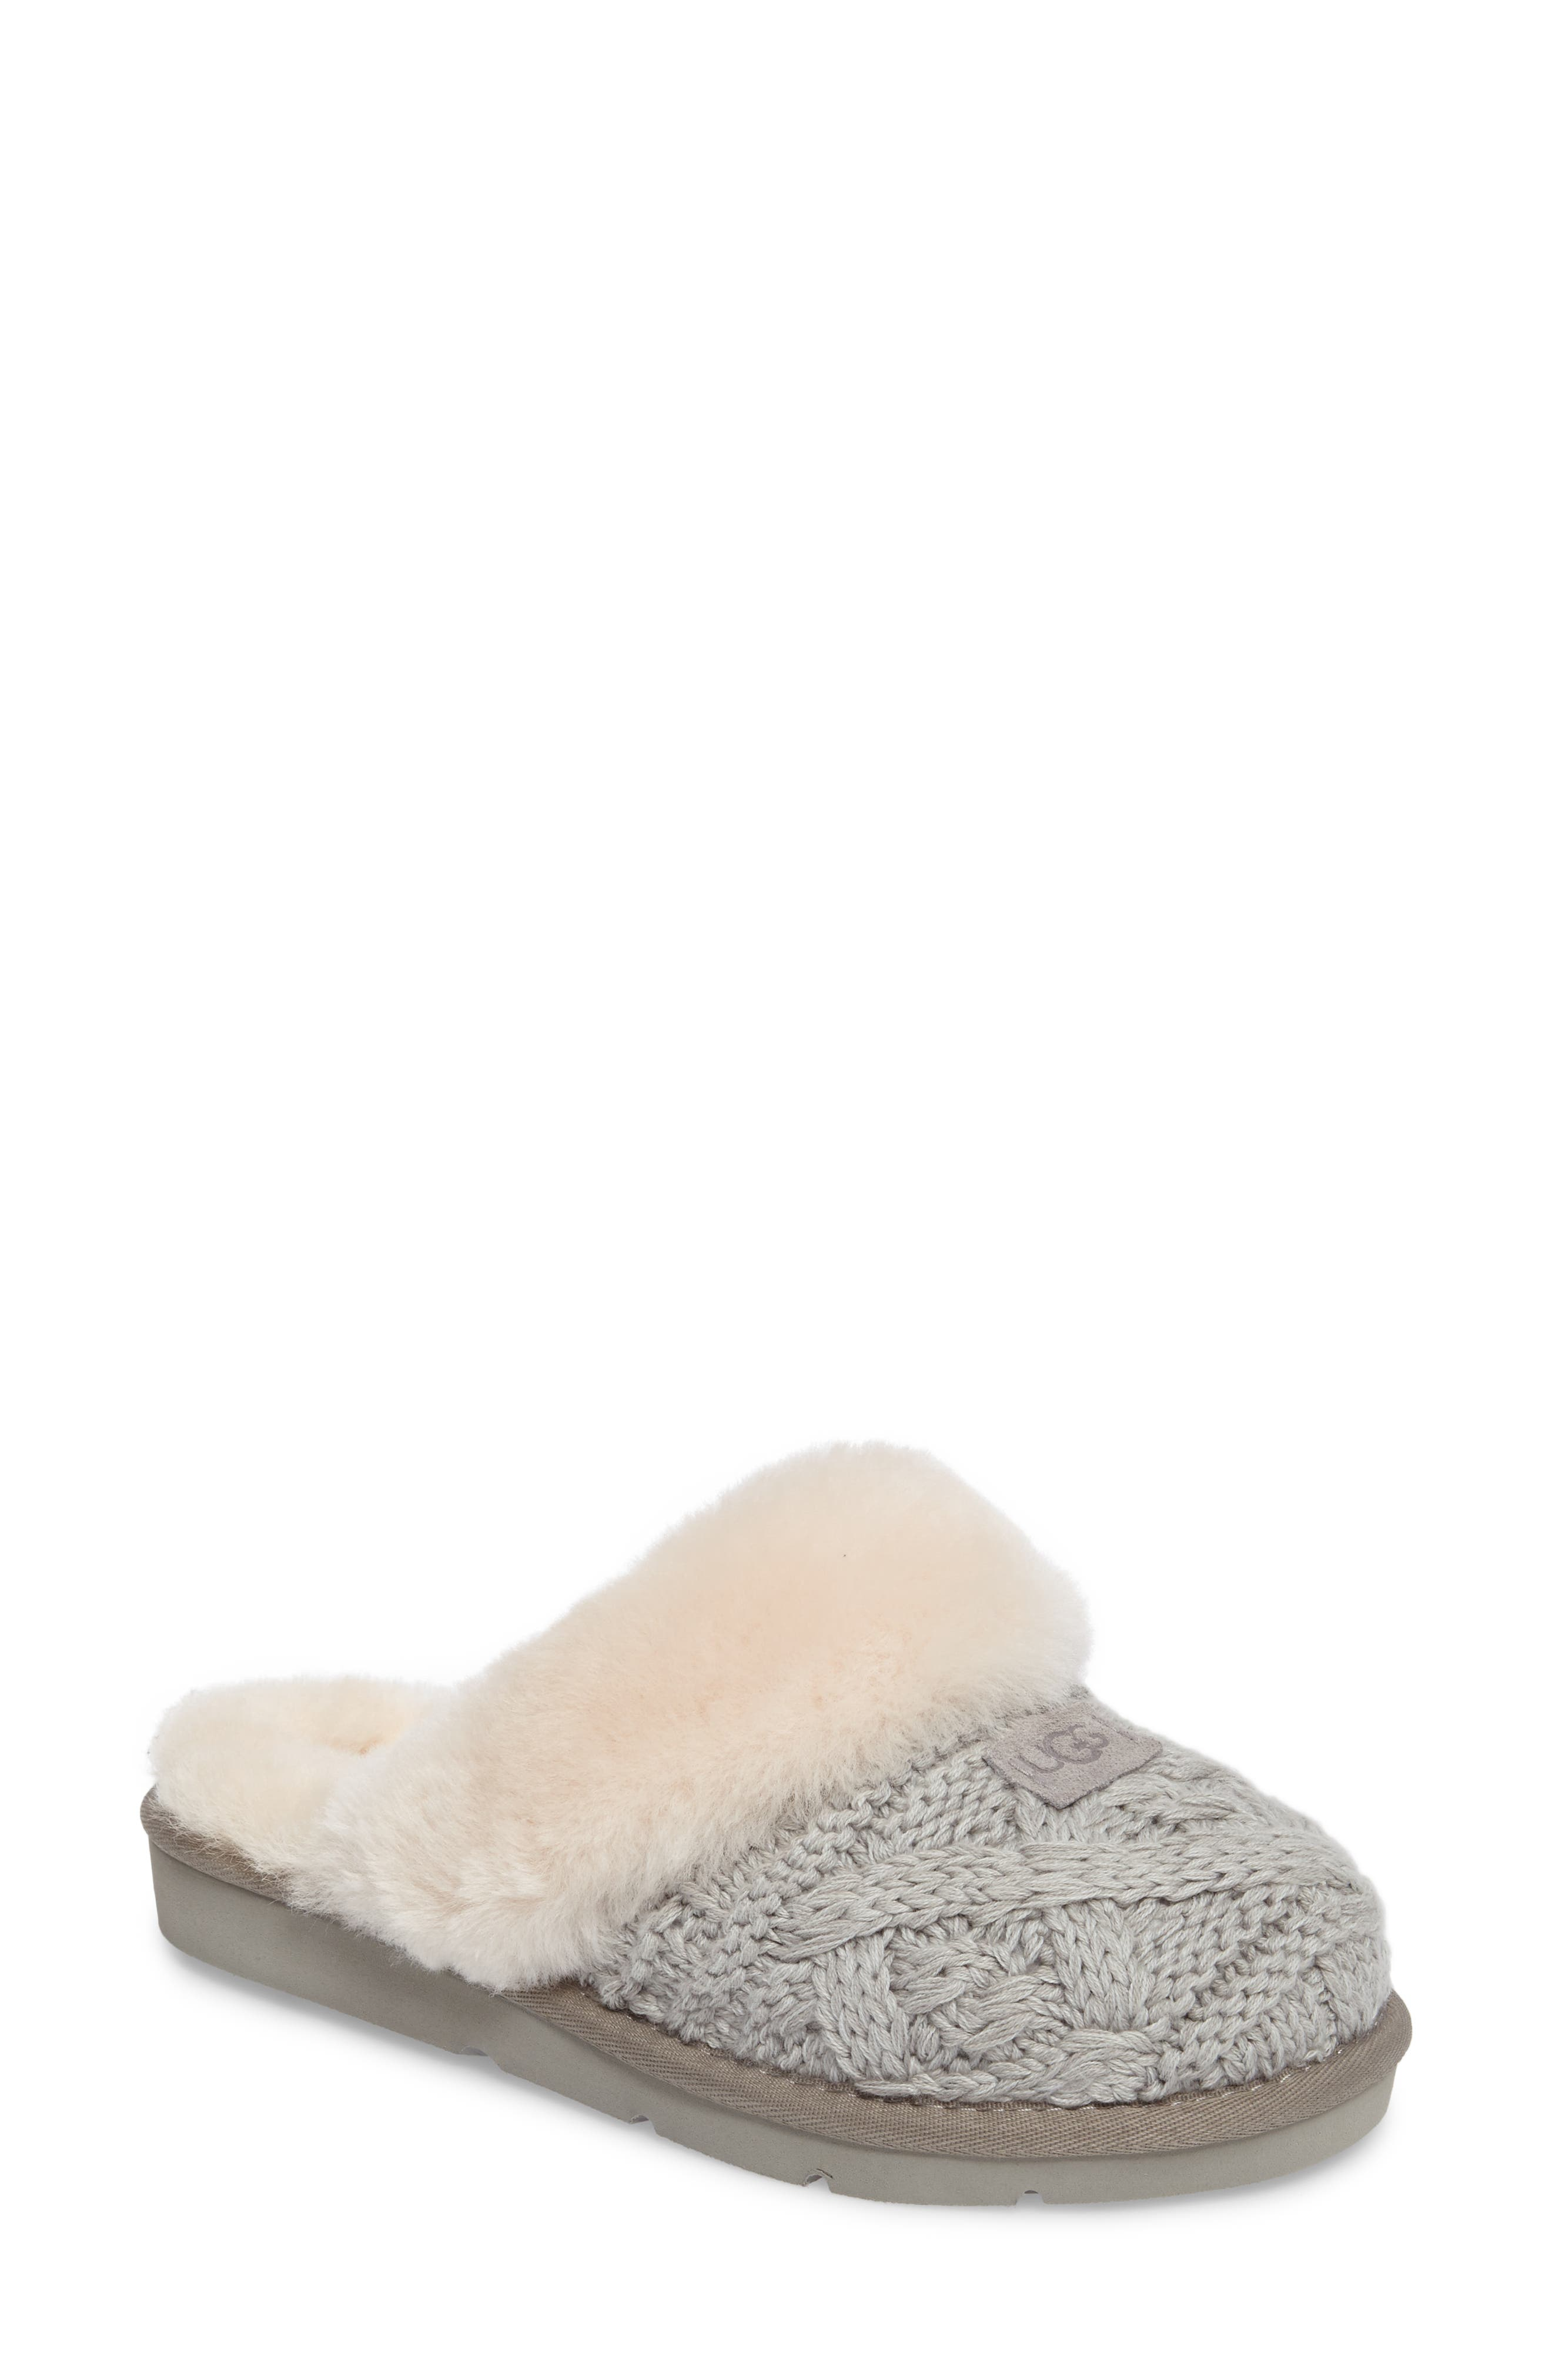 Cozy Cable Slipper,                             Main thumbnail 1, color,                             Seal Fabric